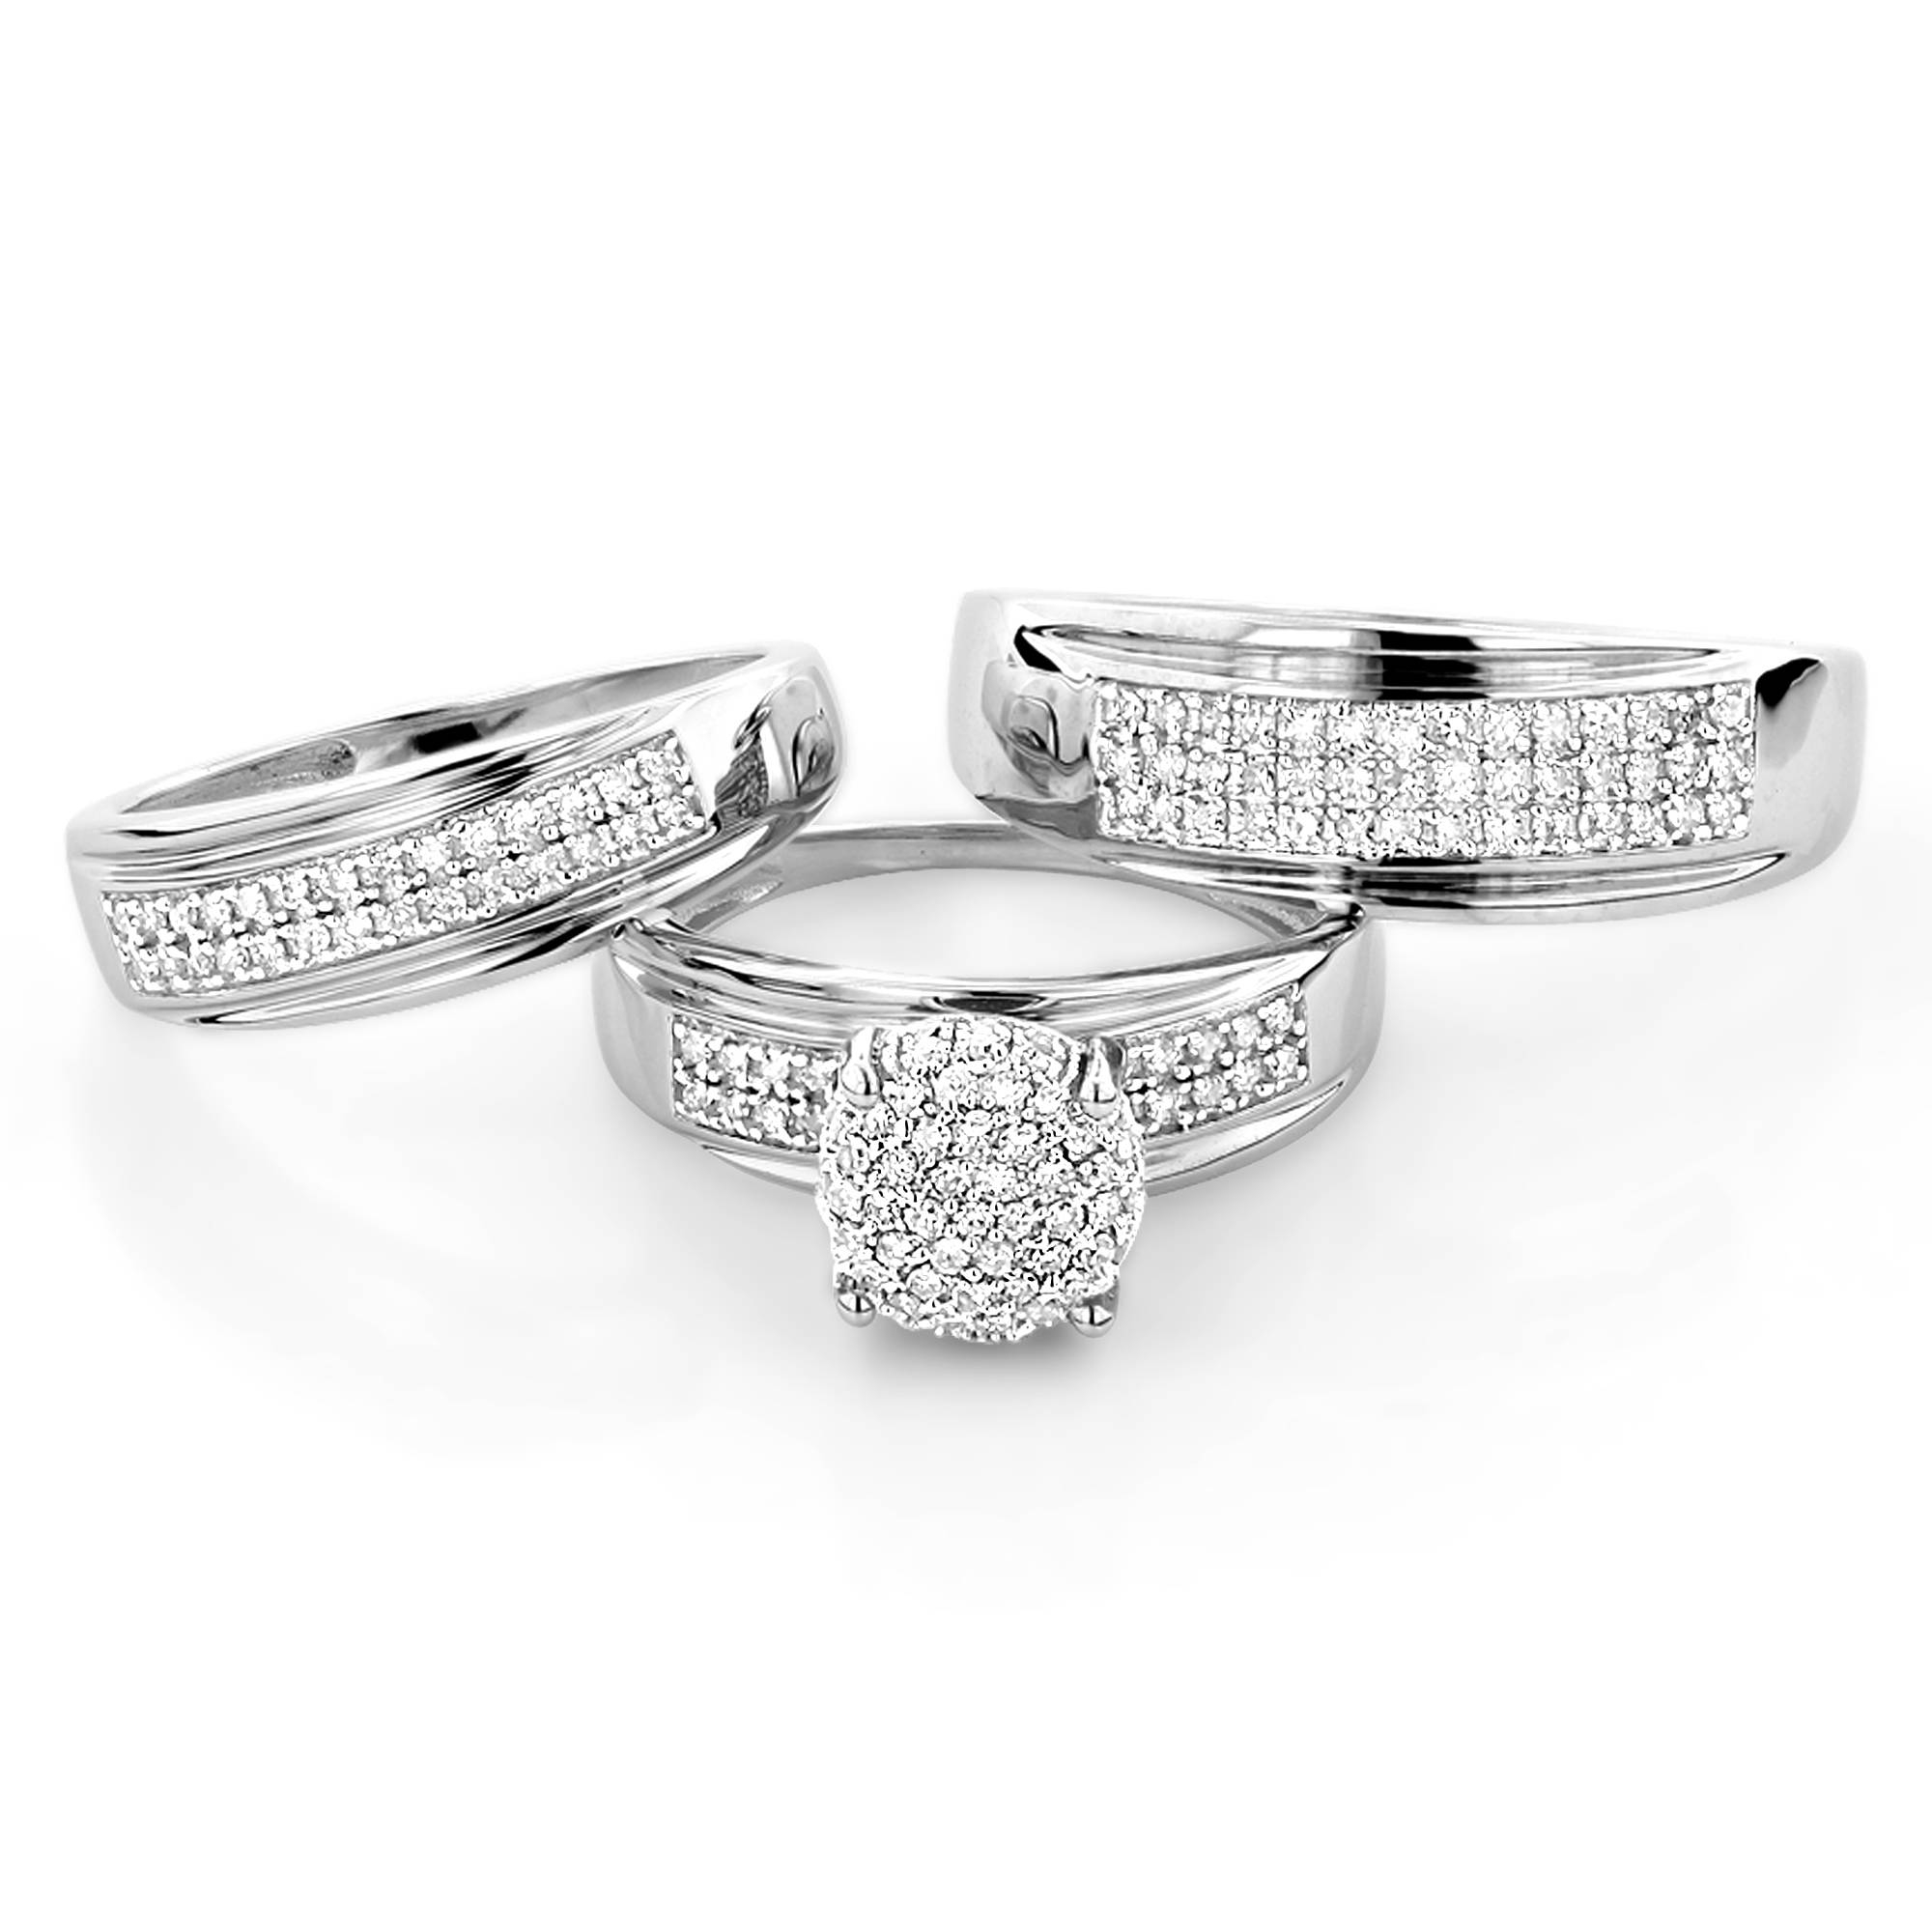 10k Gold Engagement Trio Diamond His And Hers Wedding Ring Set (View 11 of 15)